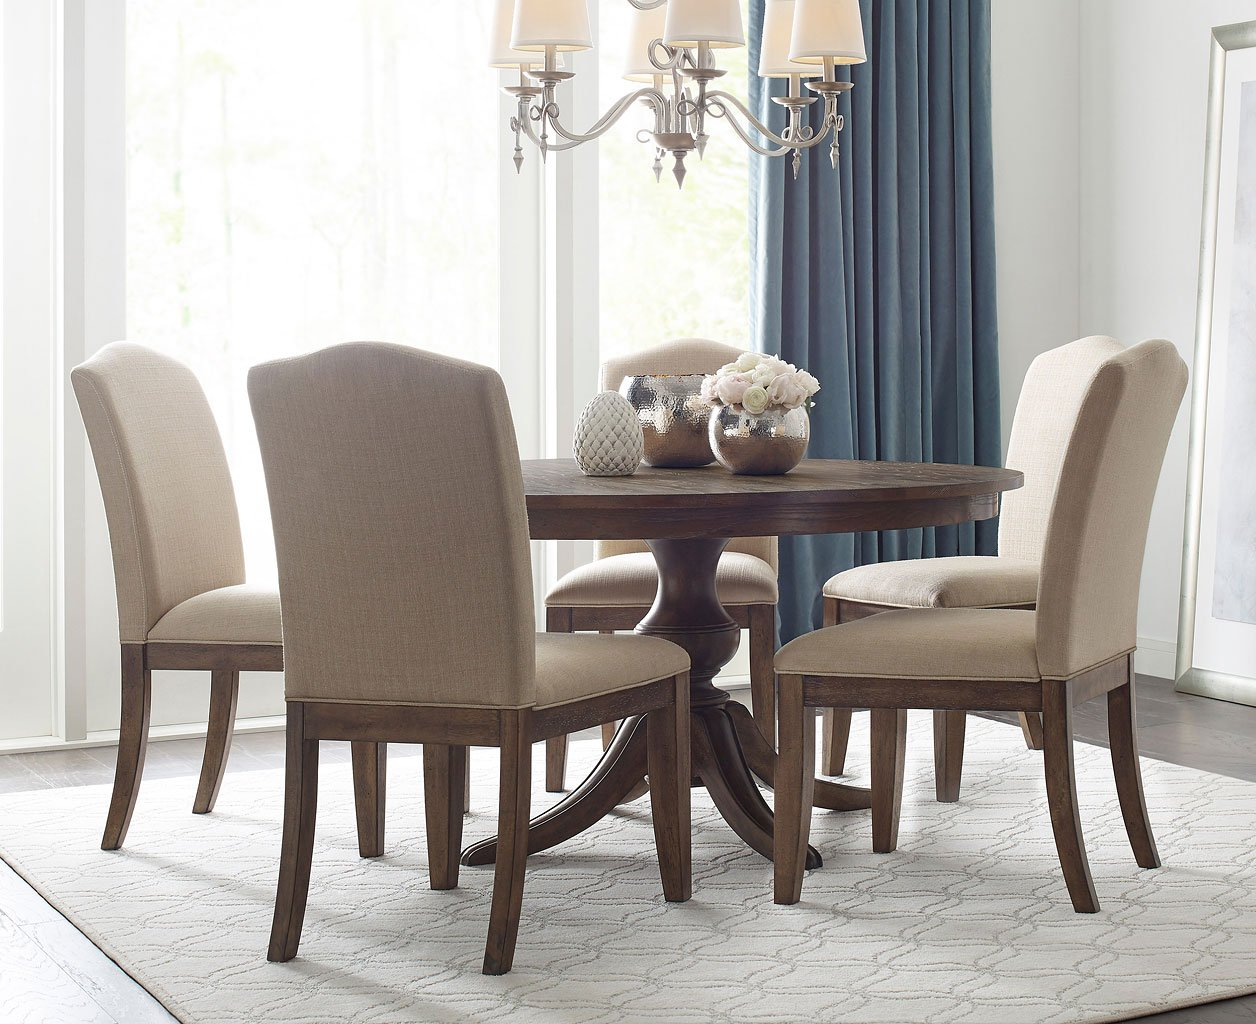 The Nook 54 Inch Round Dining Set (Maple) W/ Parsons Chairs